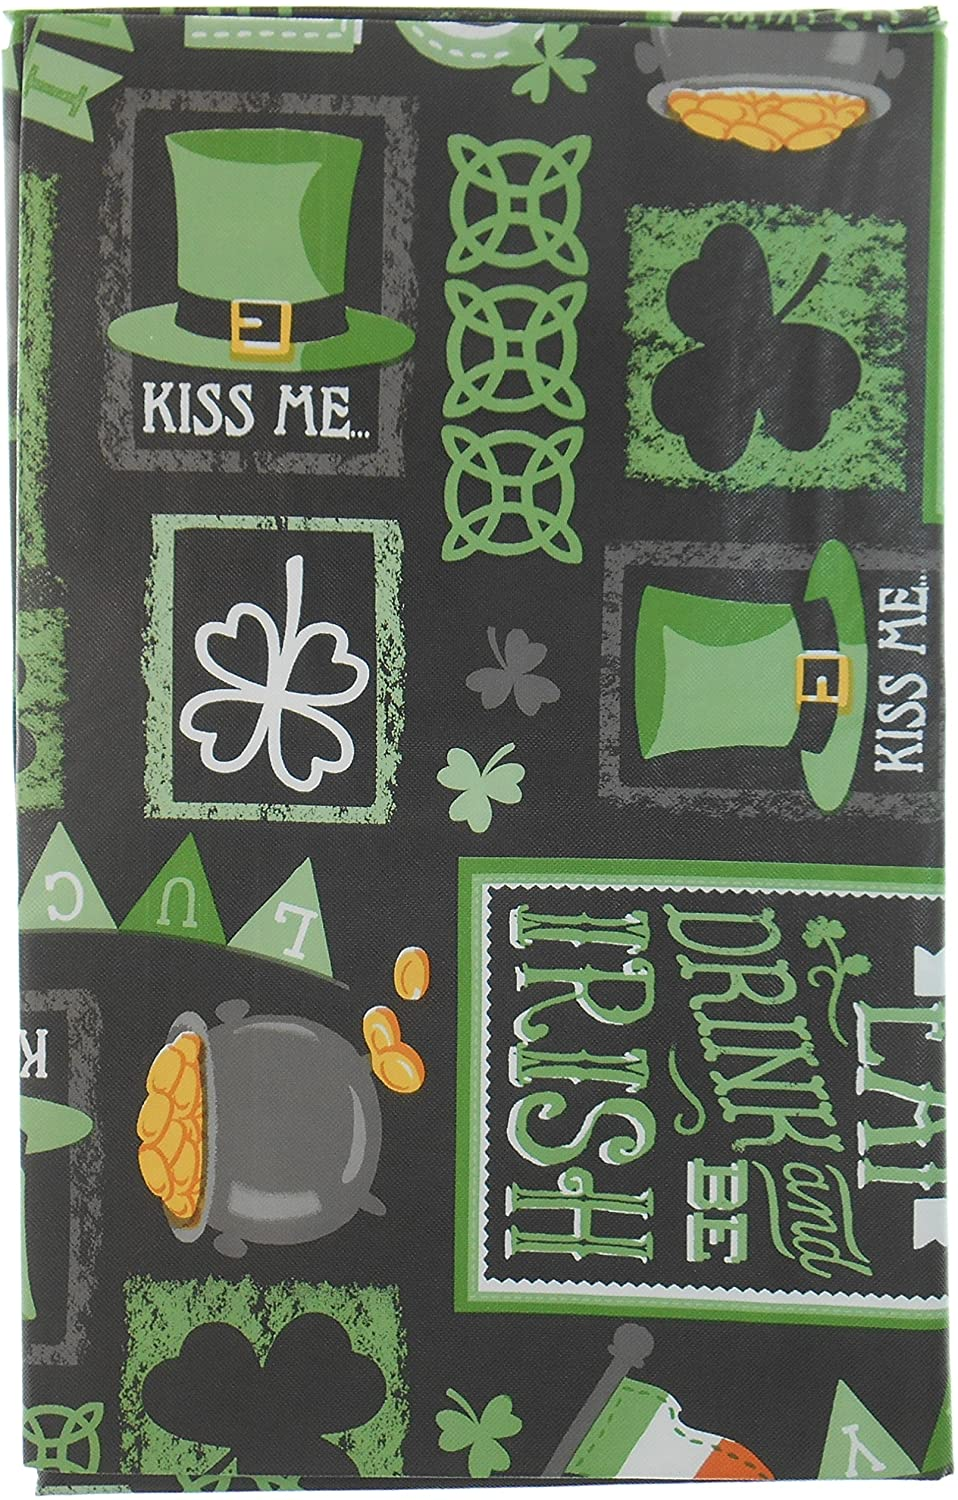 Chalkboard St. Patrick's Day Vinyl Tablelcloth with Clovers, Horseshoes, Leprechaun's Hat, Pot O' Gold, Irish Flag and More - Flannel Backing (52x52)